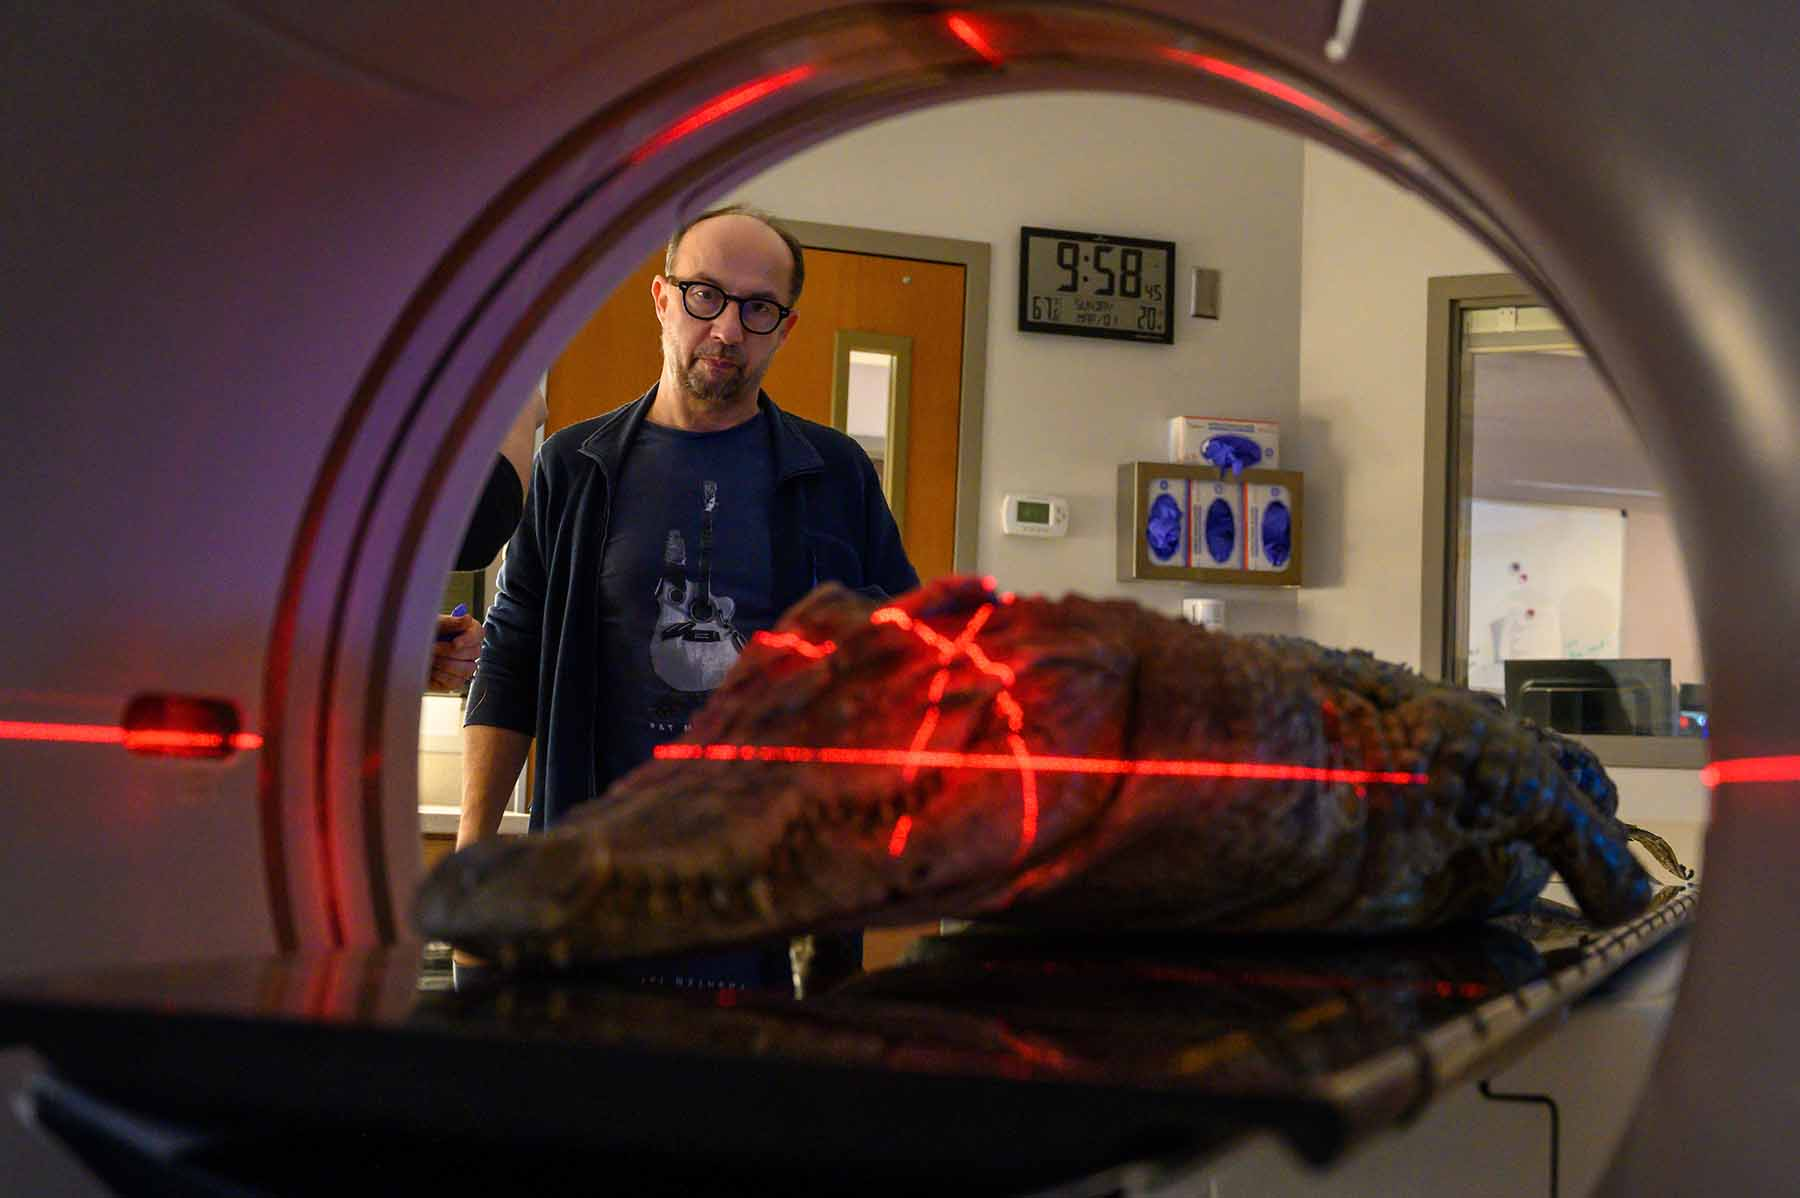 A crocodile being analyzed in a CT scanner